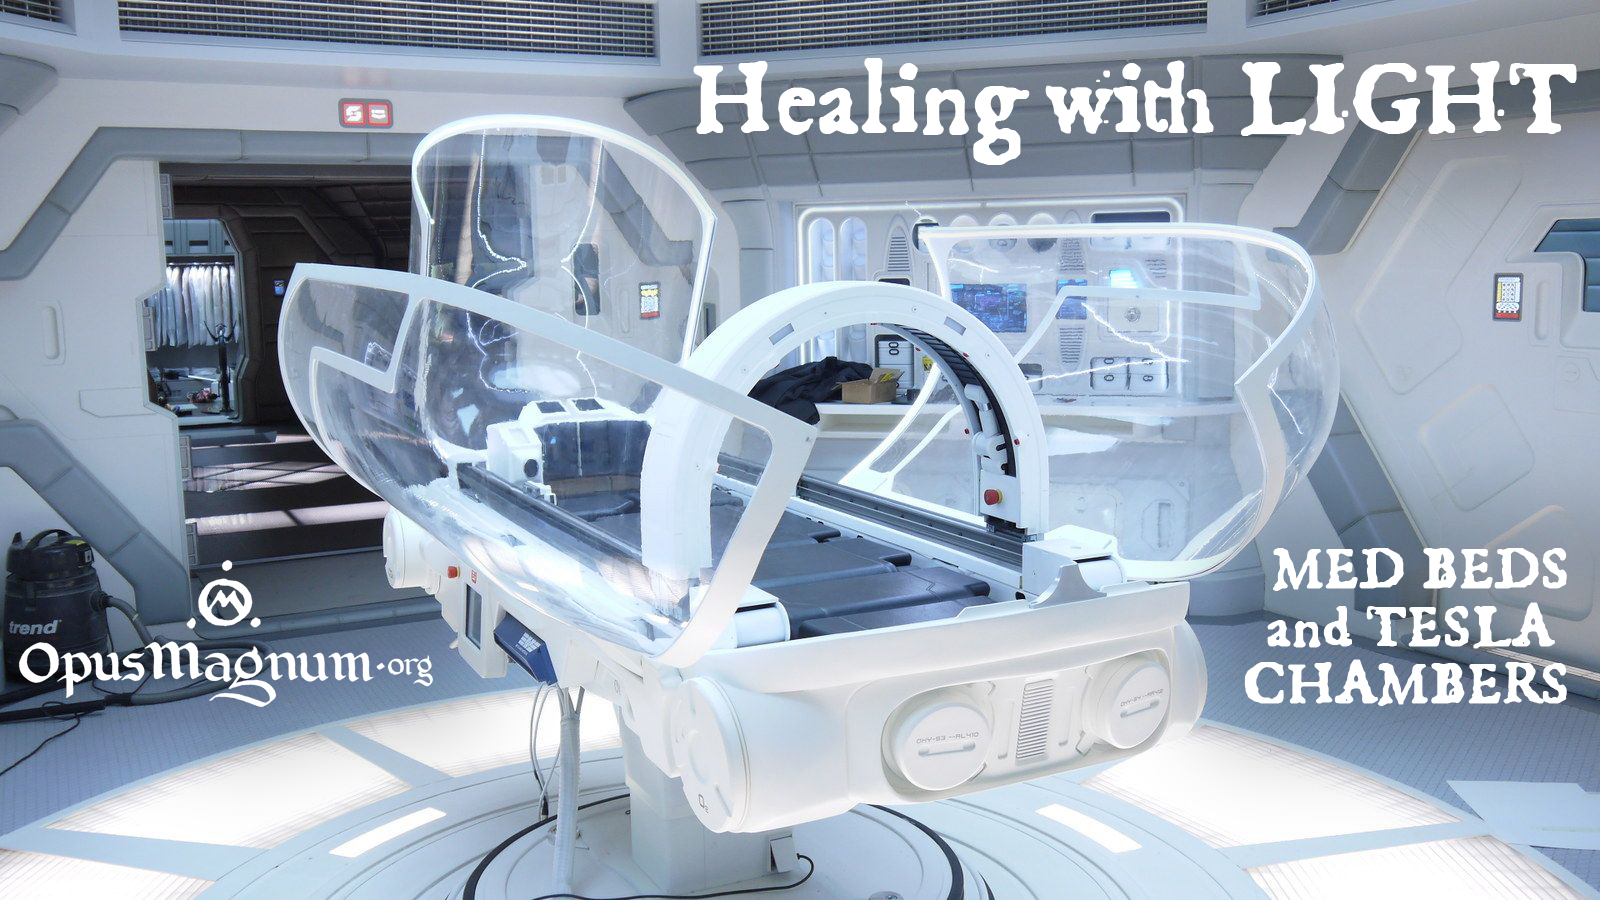 MED BEDS AND TESLA CHAMBERS | Opus Magnum